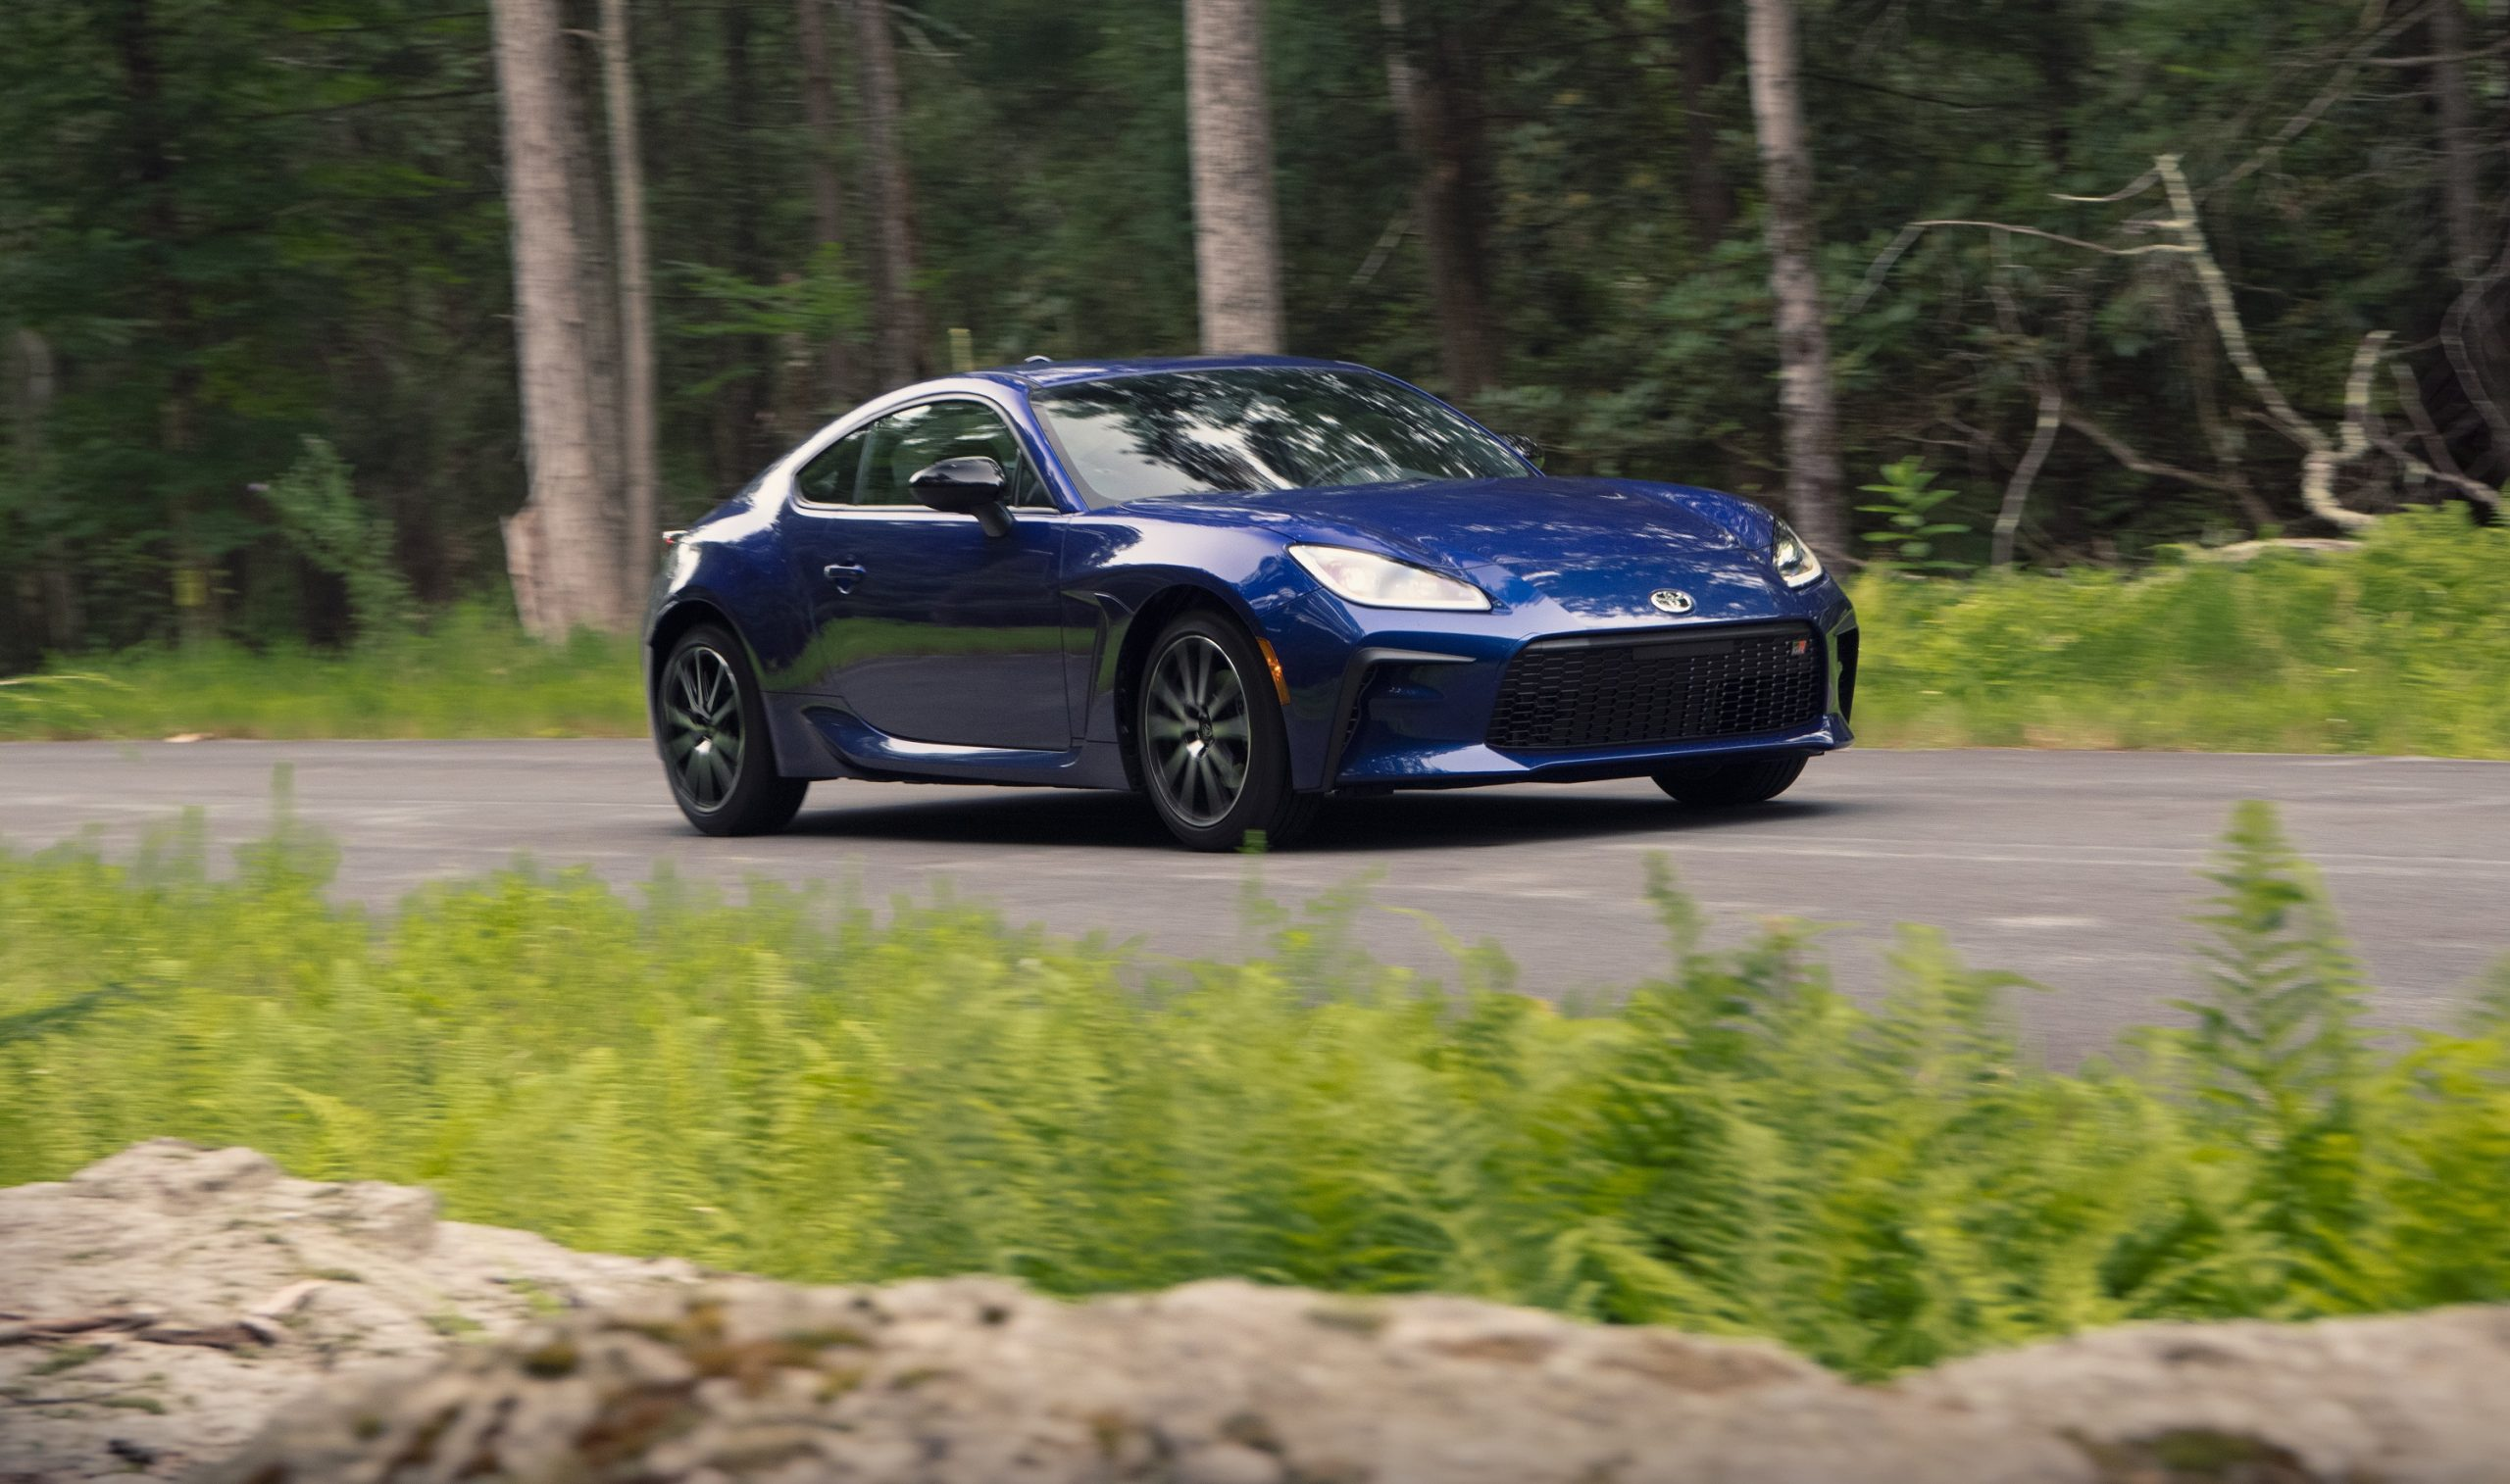 A dark blue 2022 Toyota GR 86 rolls down a forest road, shot from the front 3/4